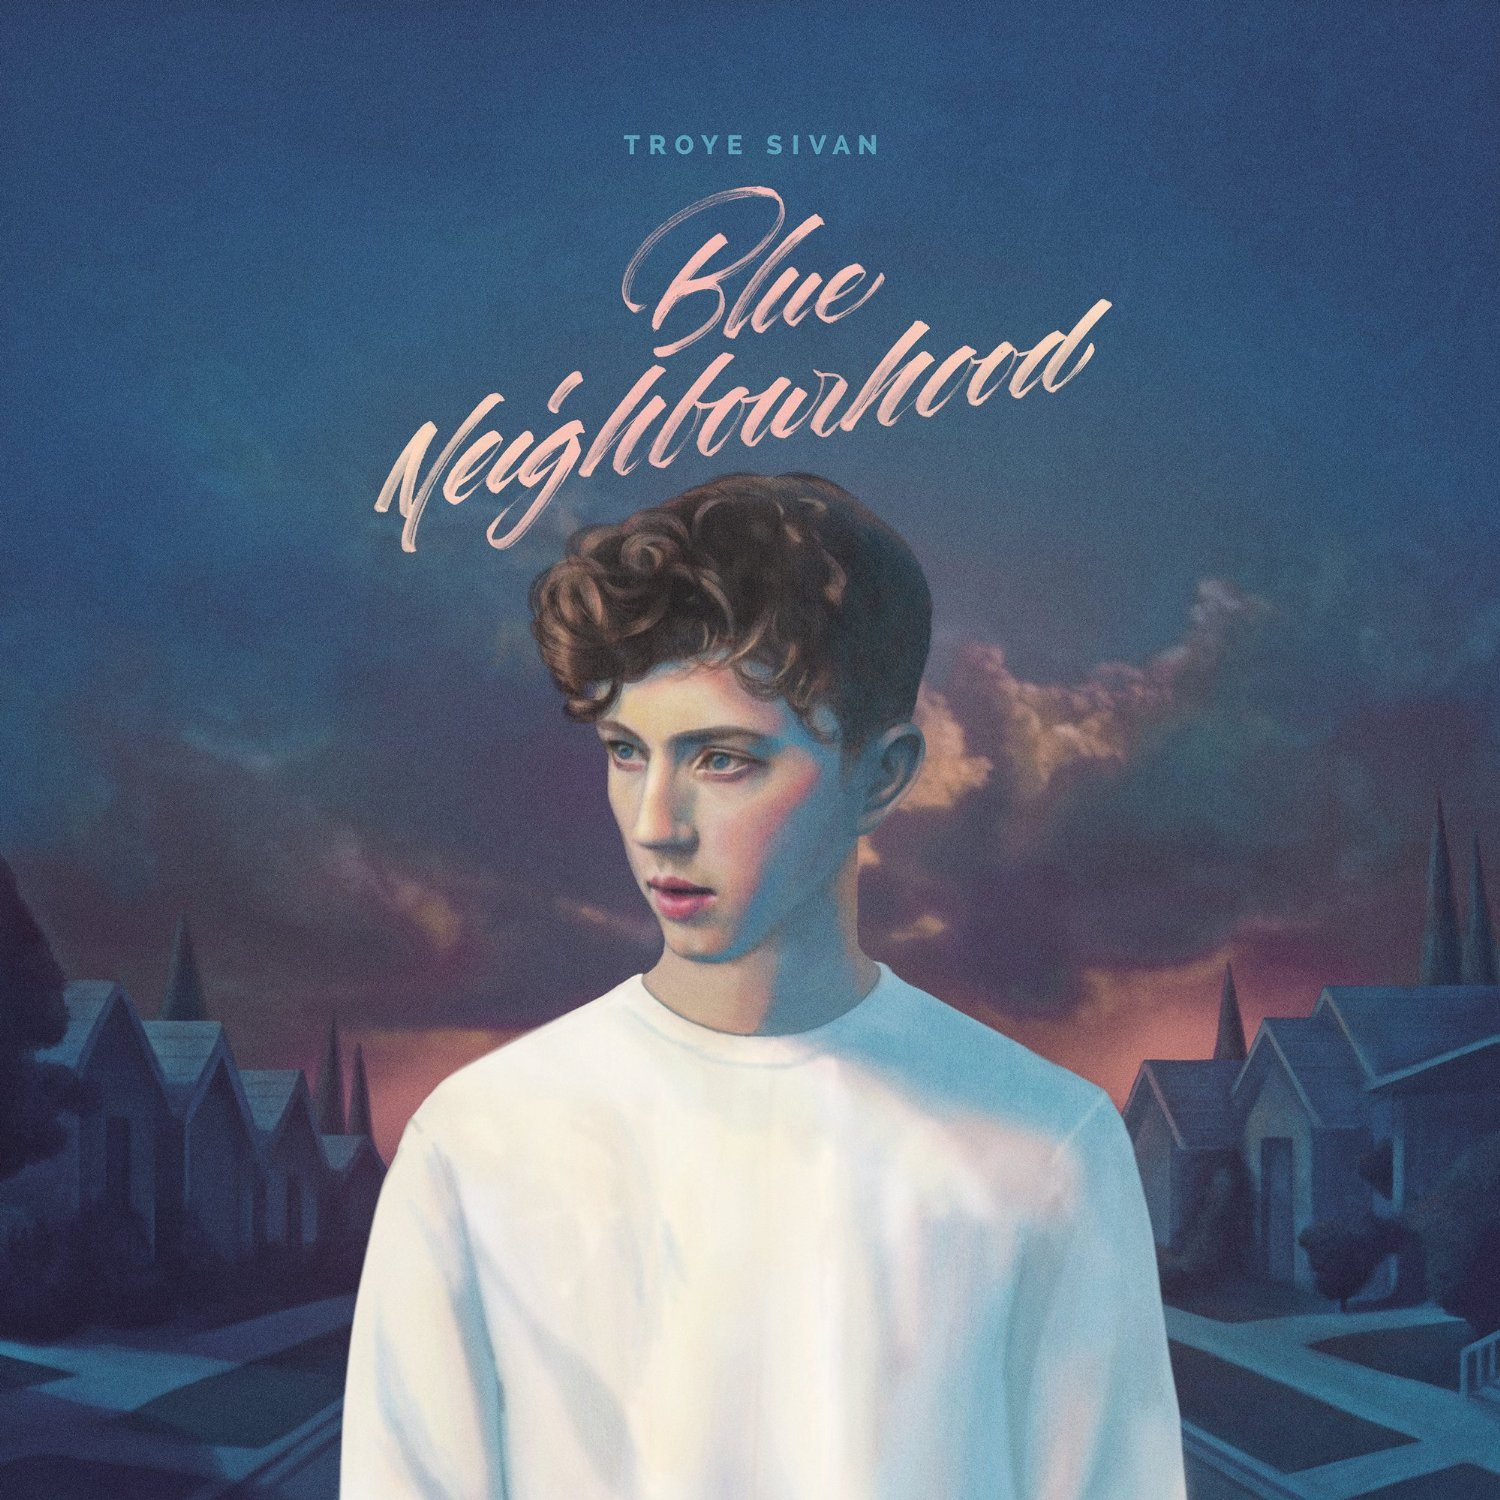 Troye Sivan, Blue Neighbourhood | Album Review